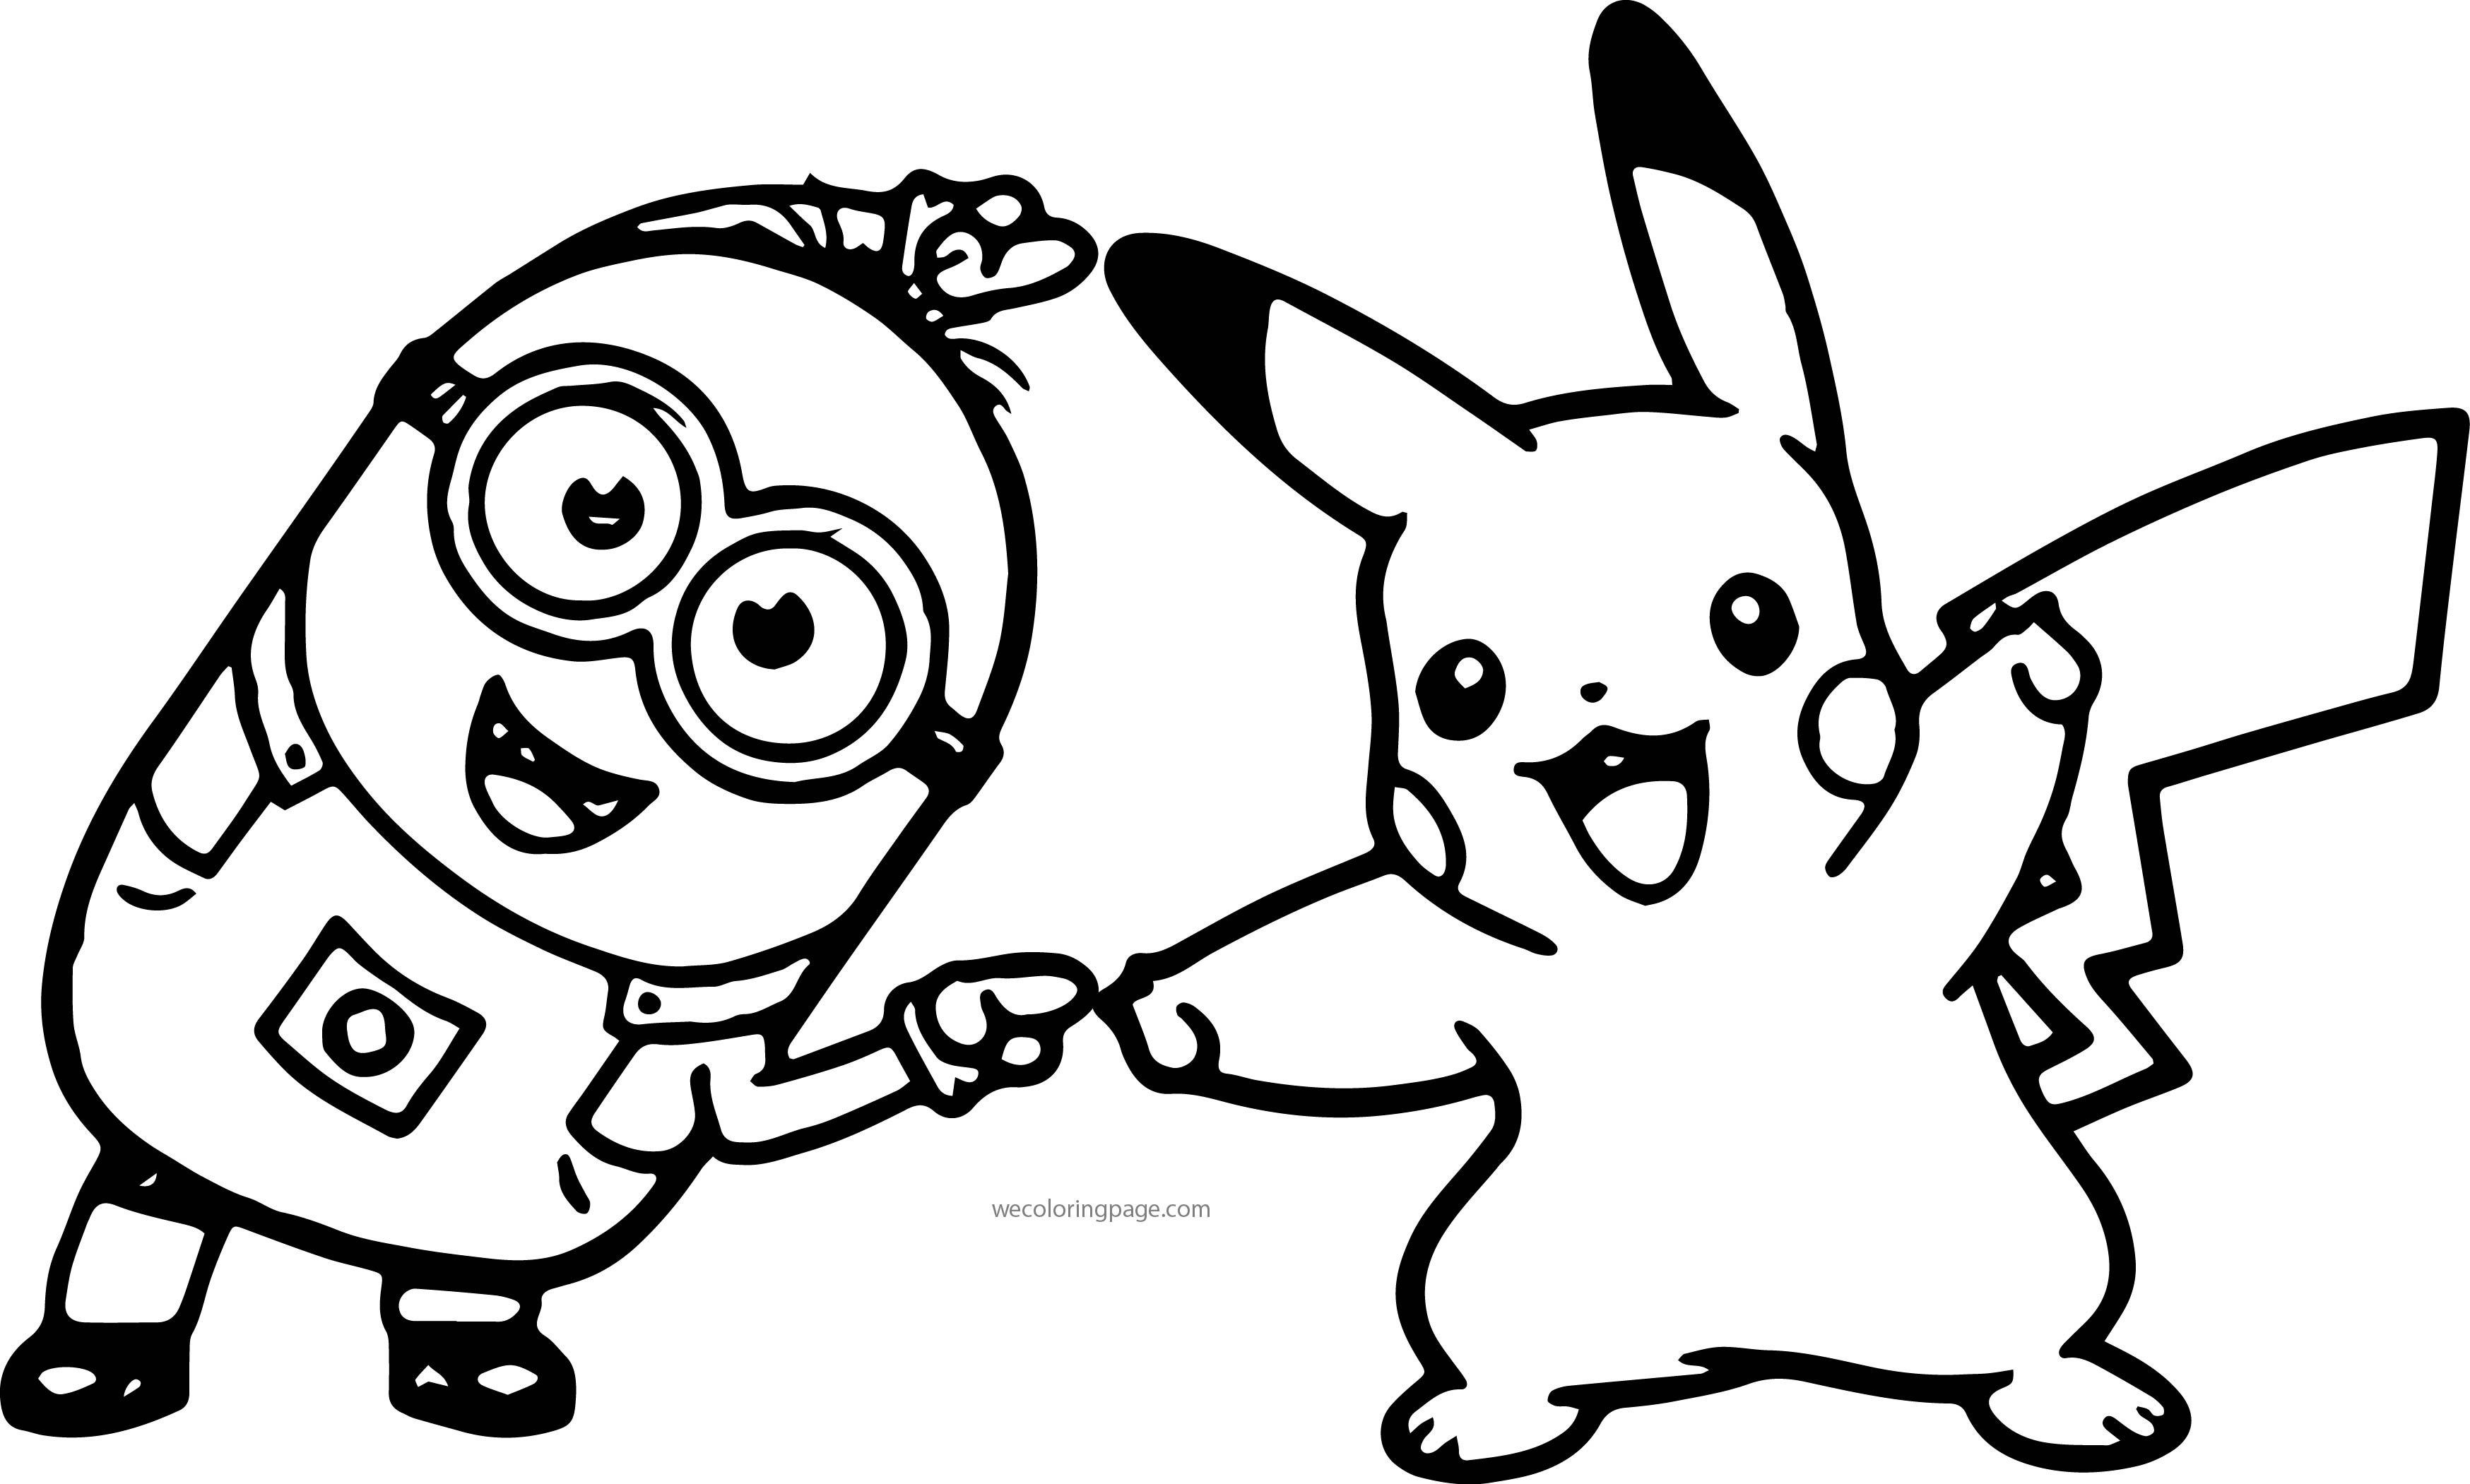 Free Printable Pokemon Coloring Pages Minion Pikachu Dance Pokemon